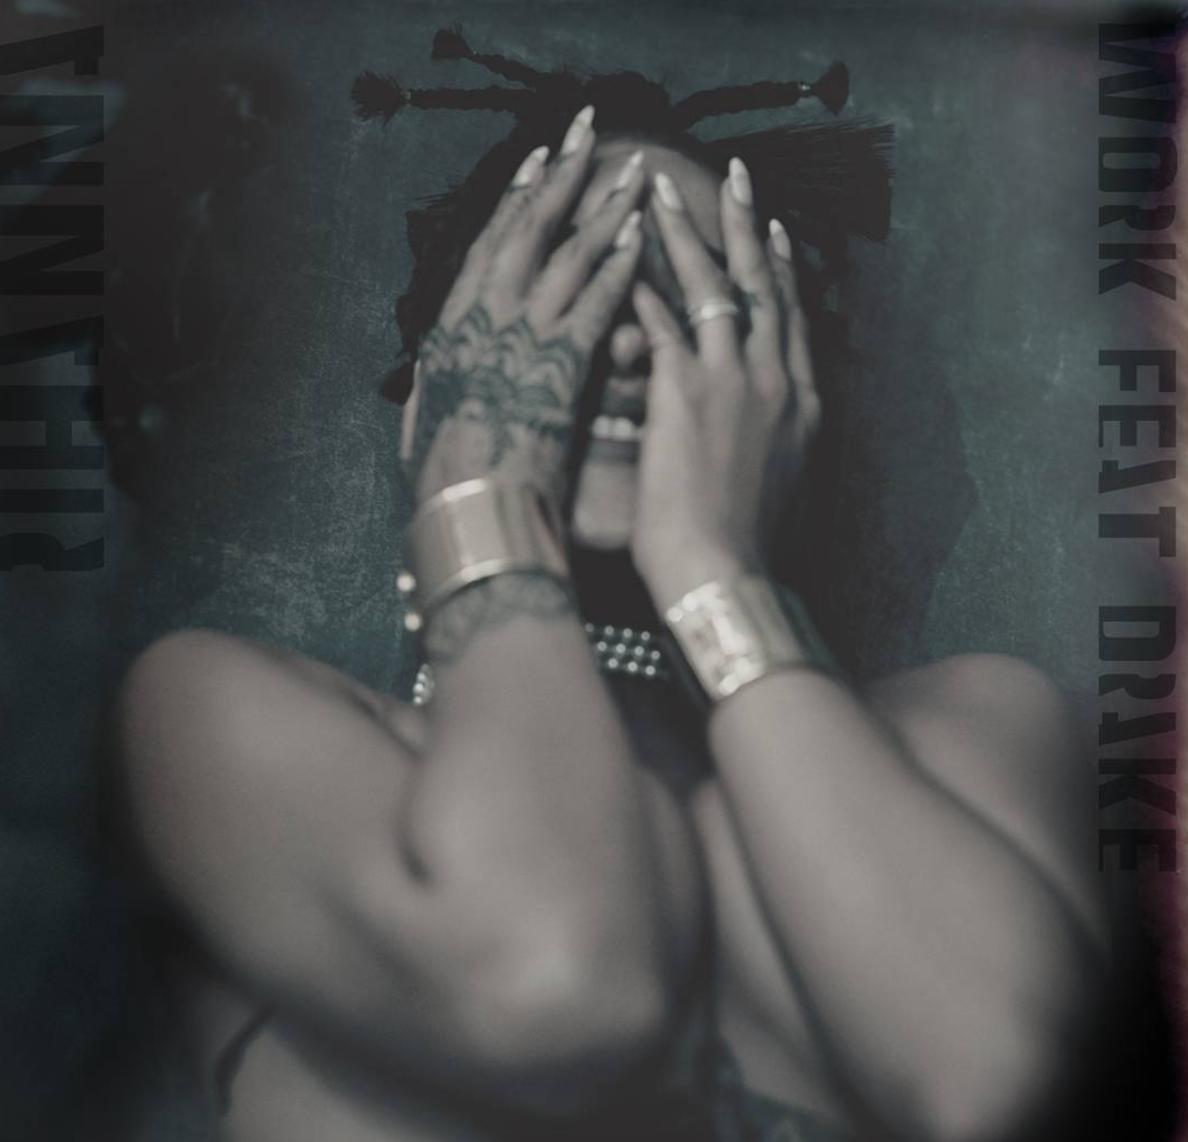 Rihanna Work Single Artwork